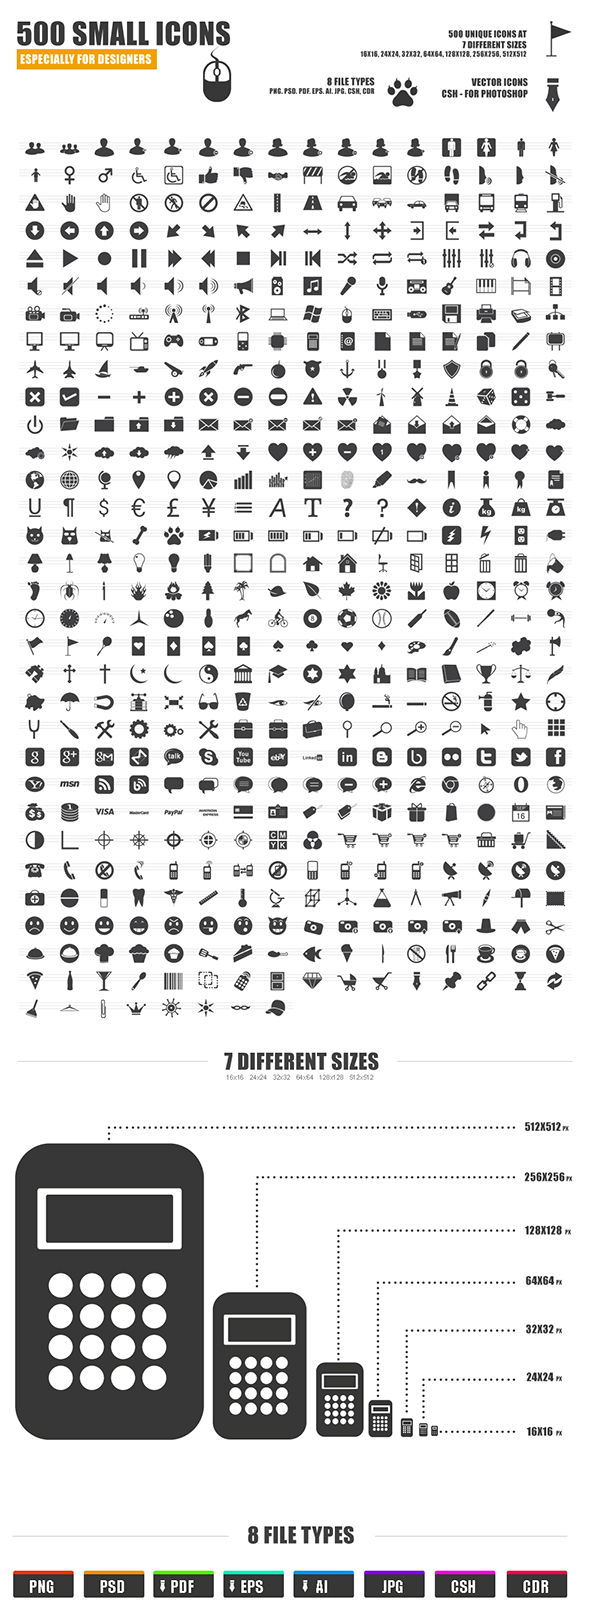 500 small icons